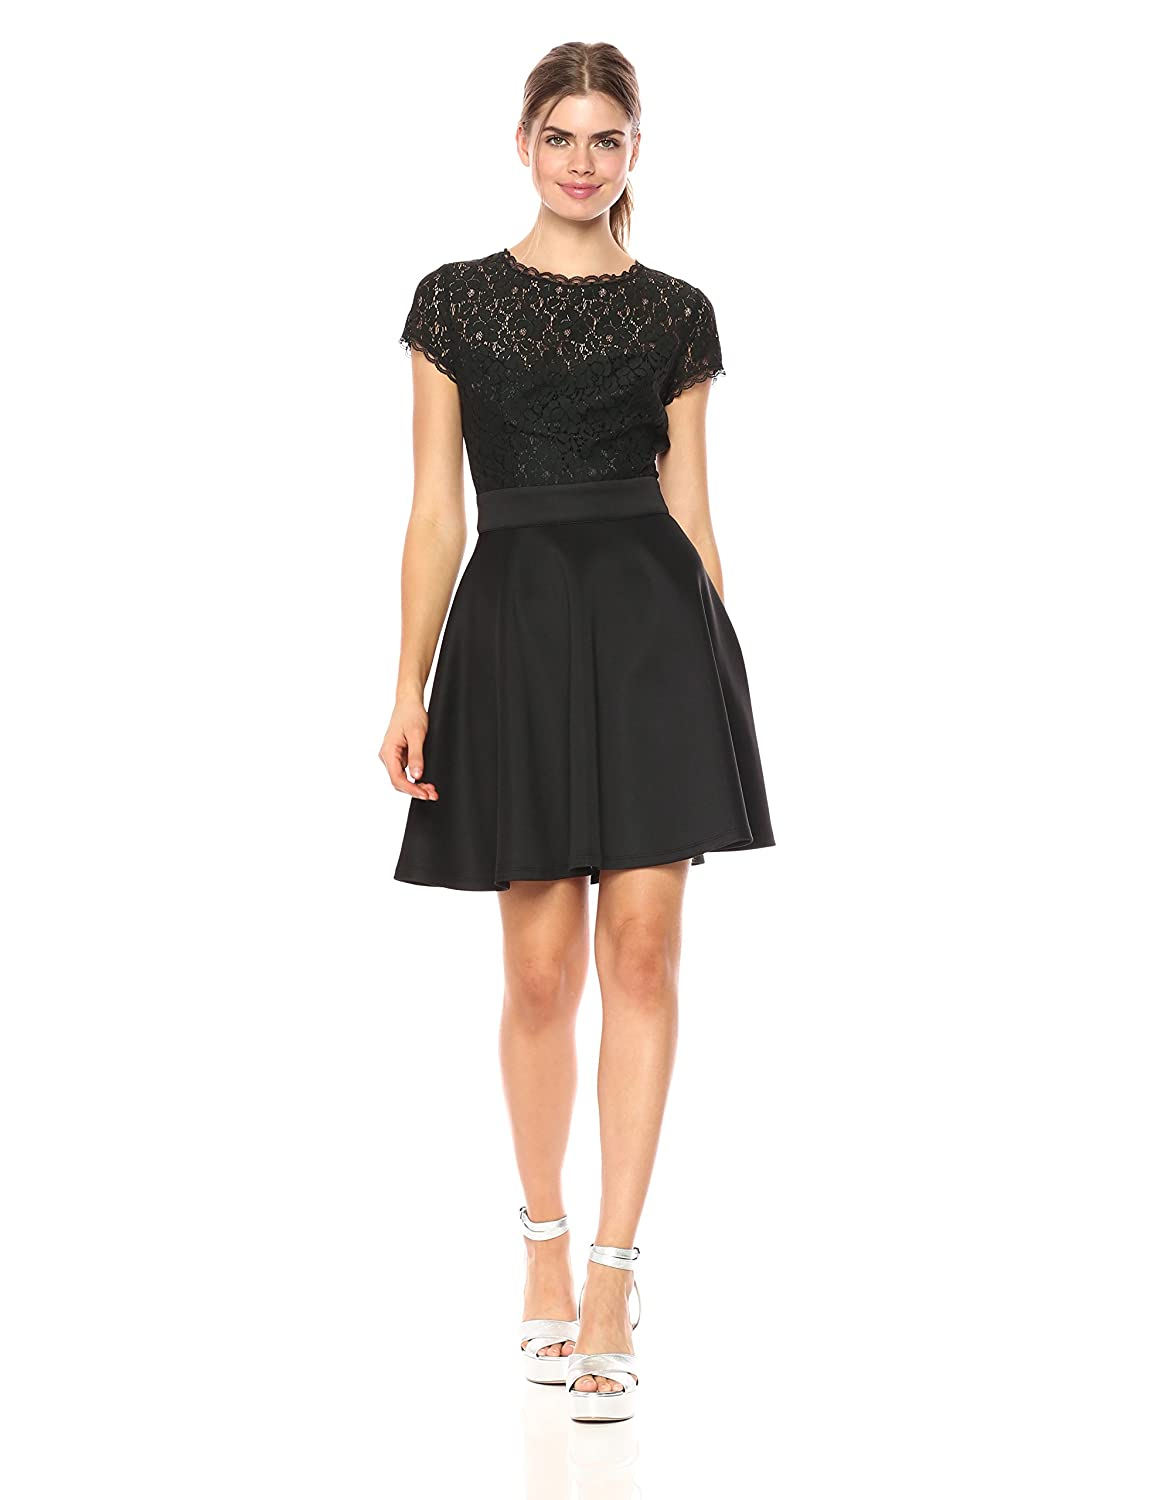 ceebb31c0580 Machine Wash Short-sleeve fit-and-flare dress featuring lace bodice, flared  scuba skirt, and open back. Lined bust, cap sleeves, concealed back zipper